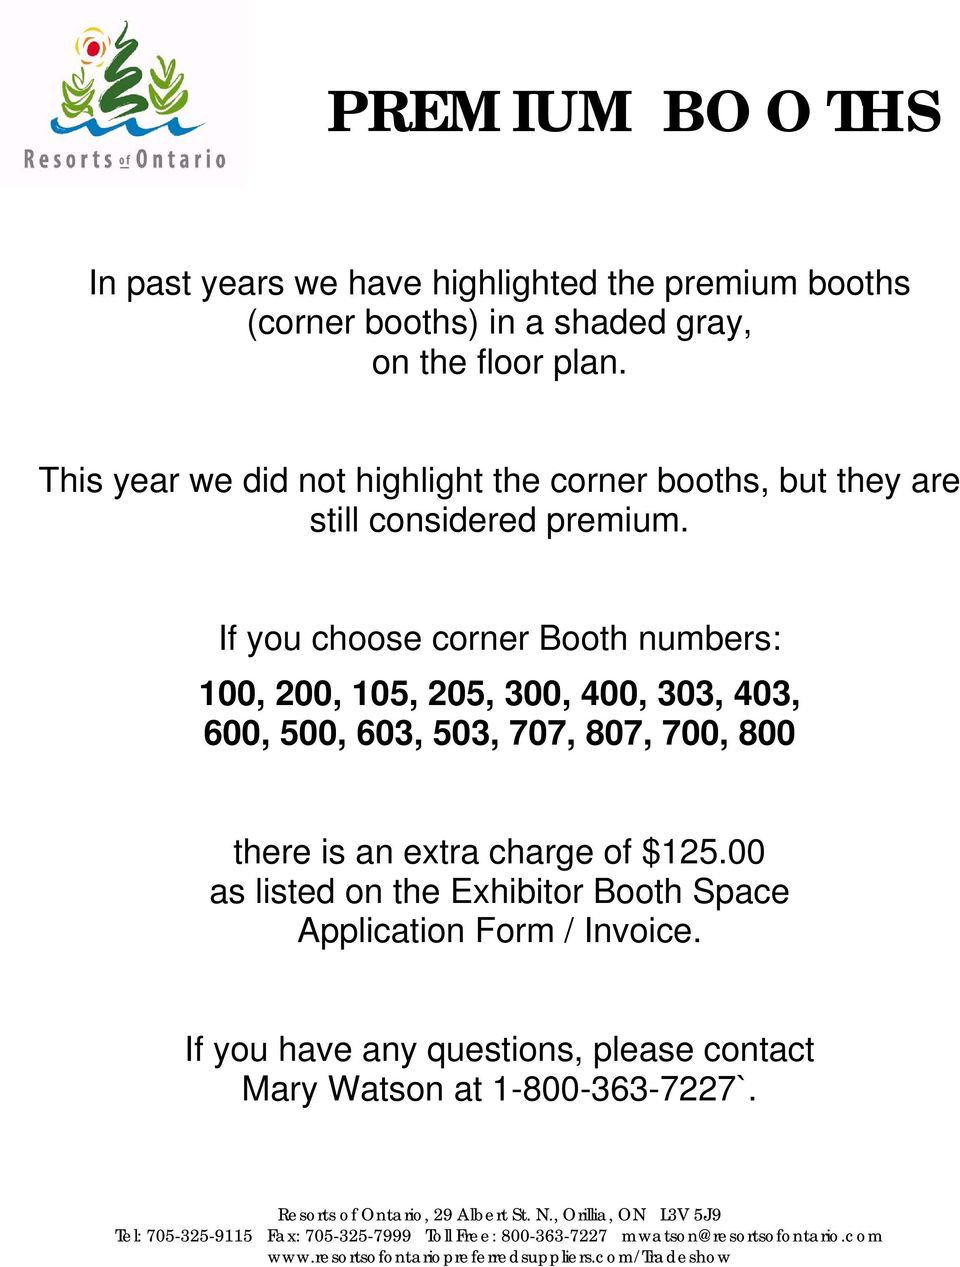 If you choose corner Booth numbers: 100, 200, 105, 205, 300, 400, 303, 403, 600, 500, 603, 503, 707, 807, 700, 800 there is an extra charge of $125.